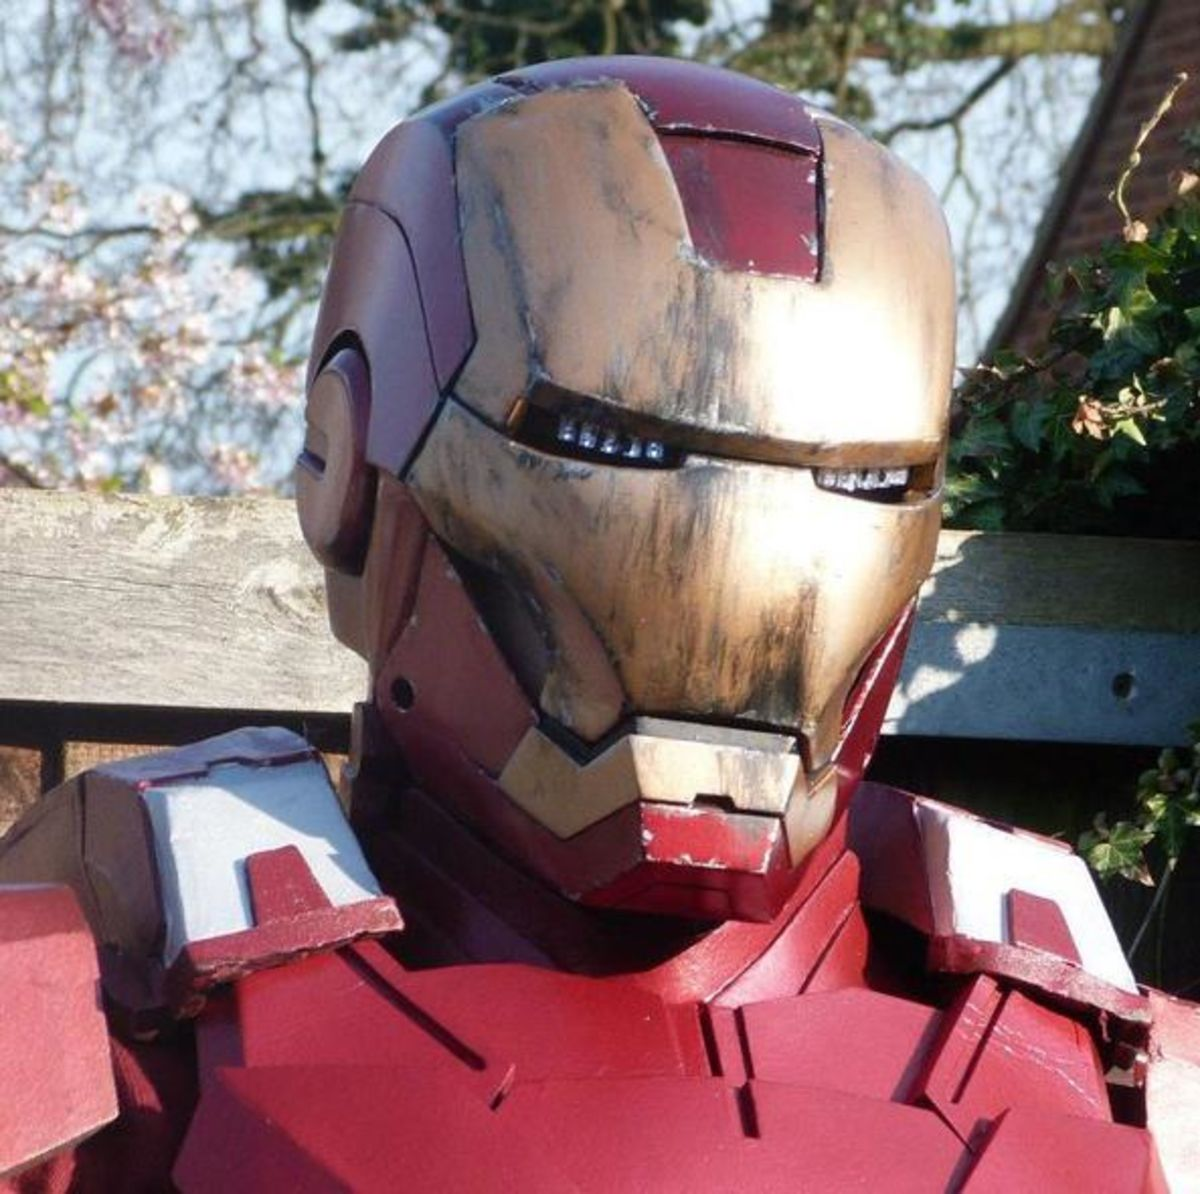 This kid built his own hyper-realistic Iron Man suit out of foam